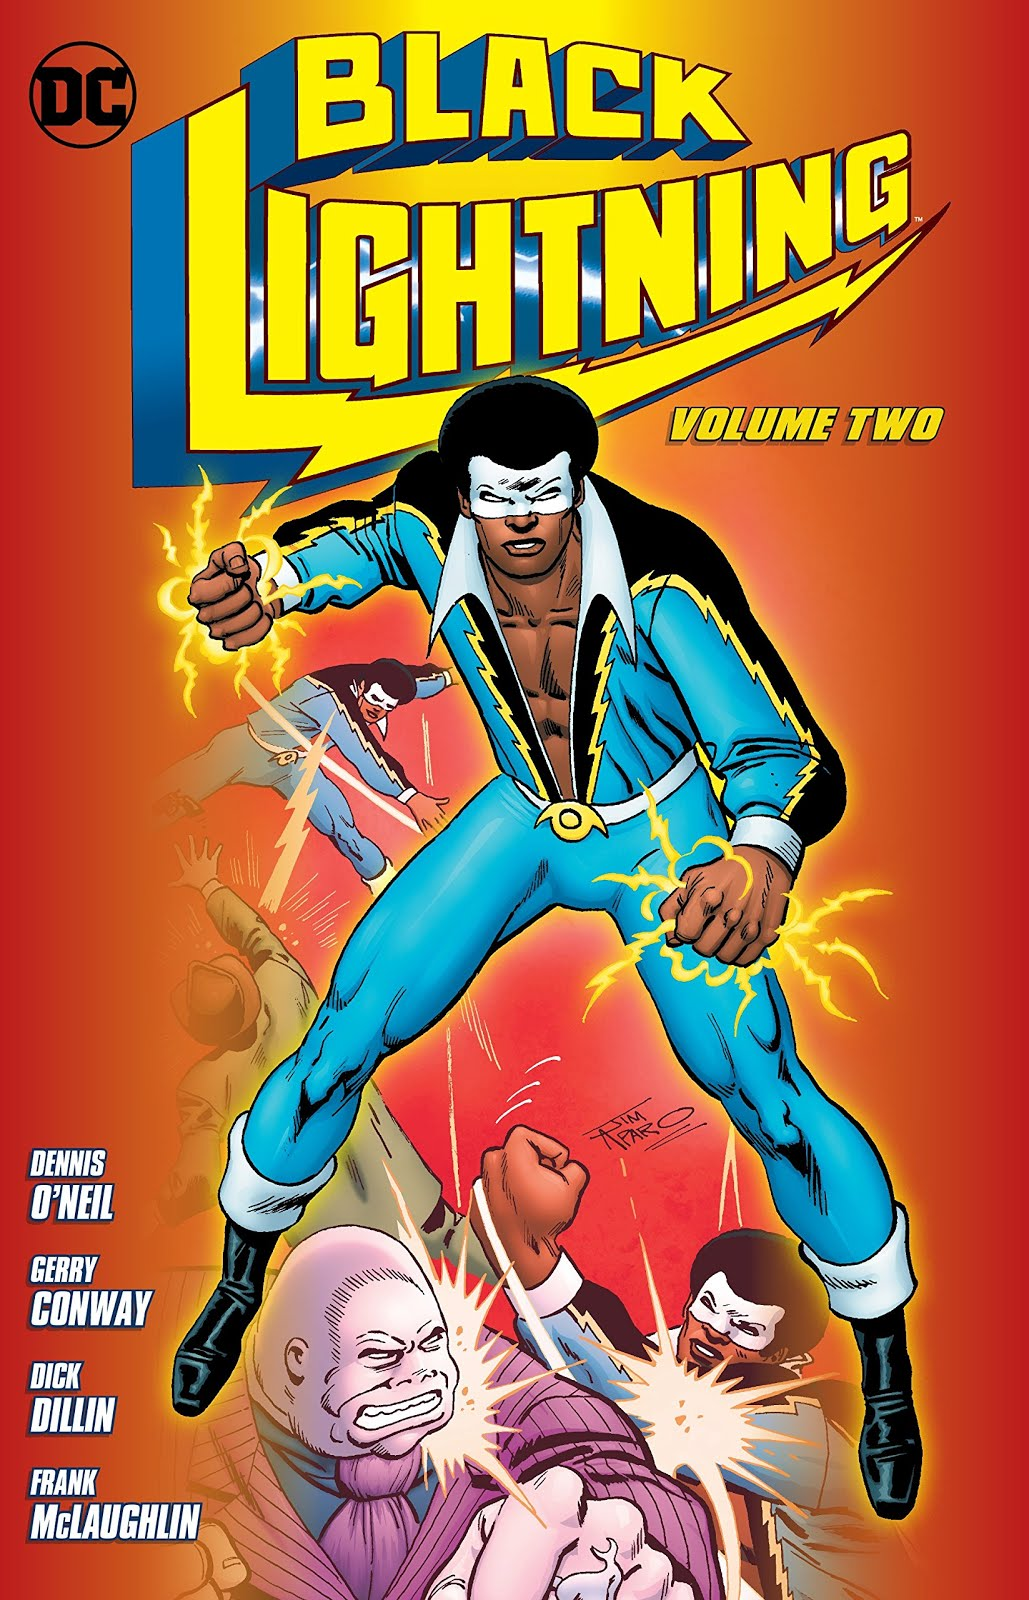 BLACK LIGHTNING VOLUME TWO